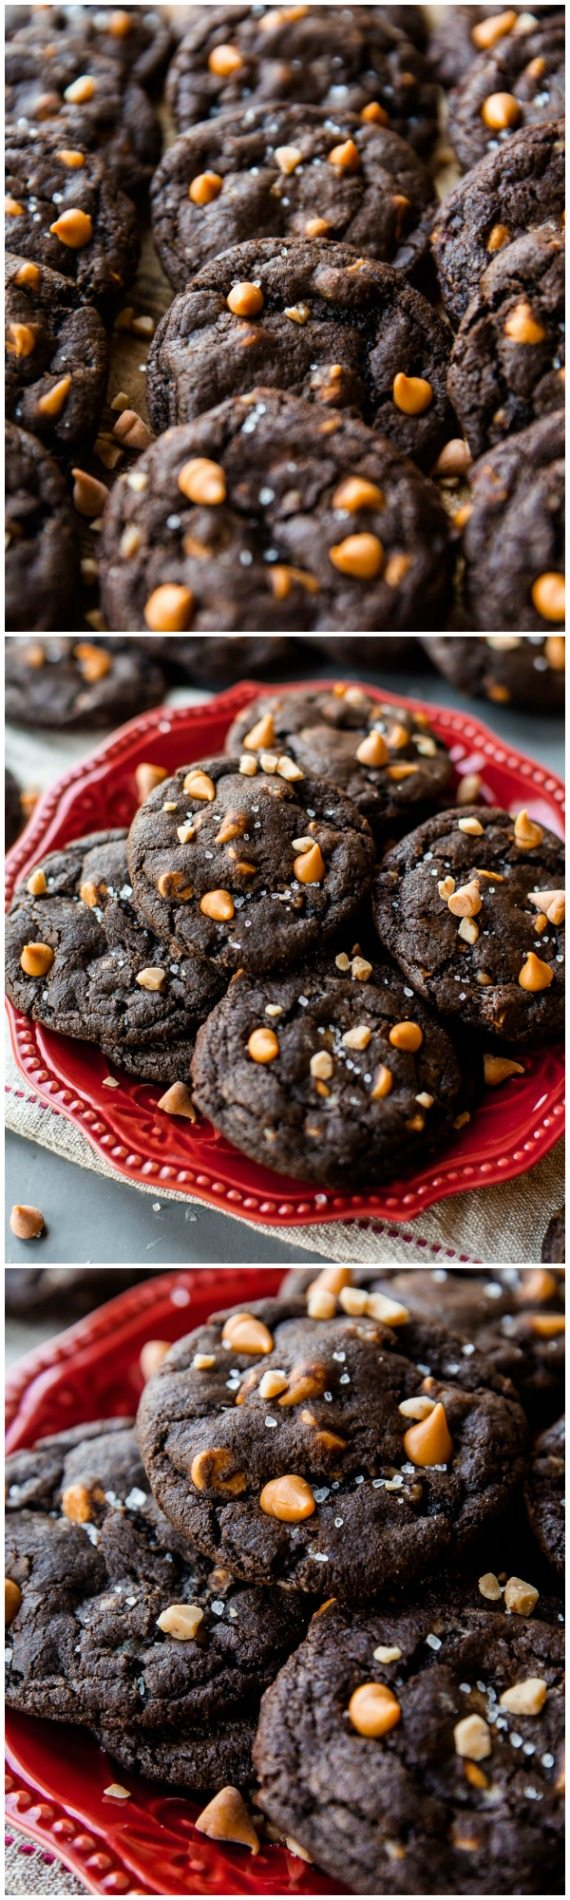 Satisfy your largest chocolate craving with these salty sweet butterscotch toffee chocolate fudge cookies! Recipe on sallysbakingaddiction.com